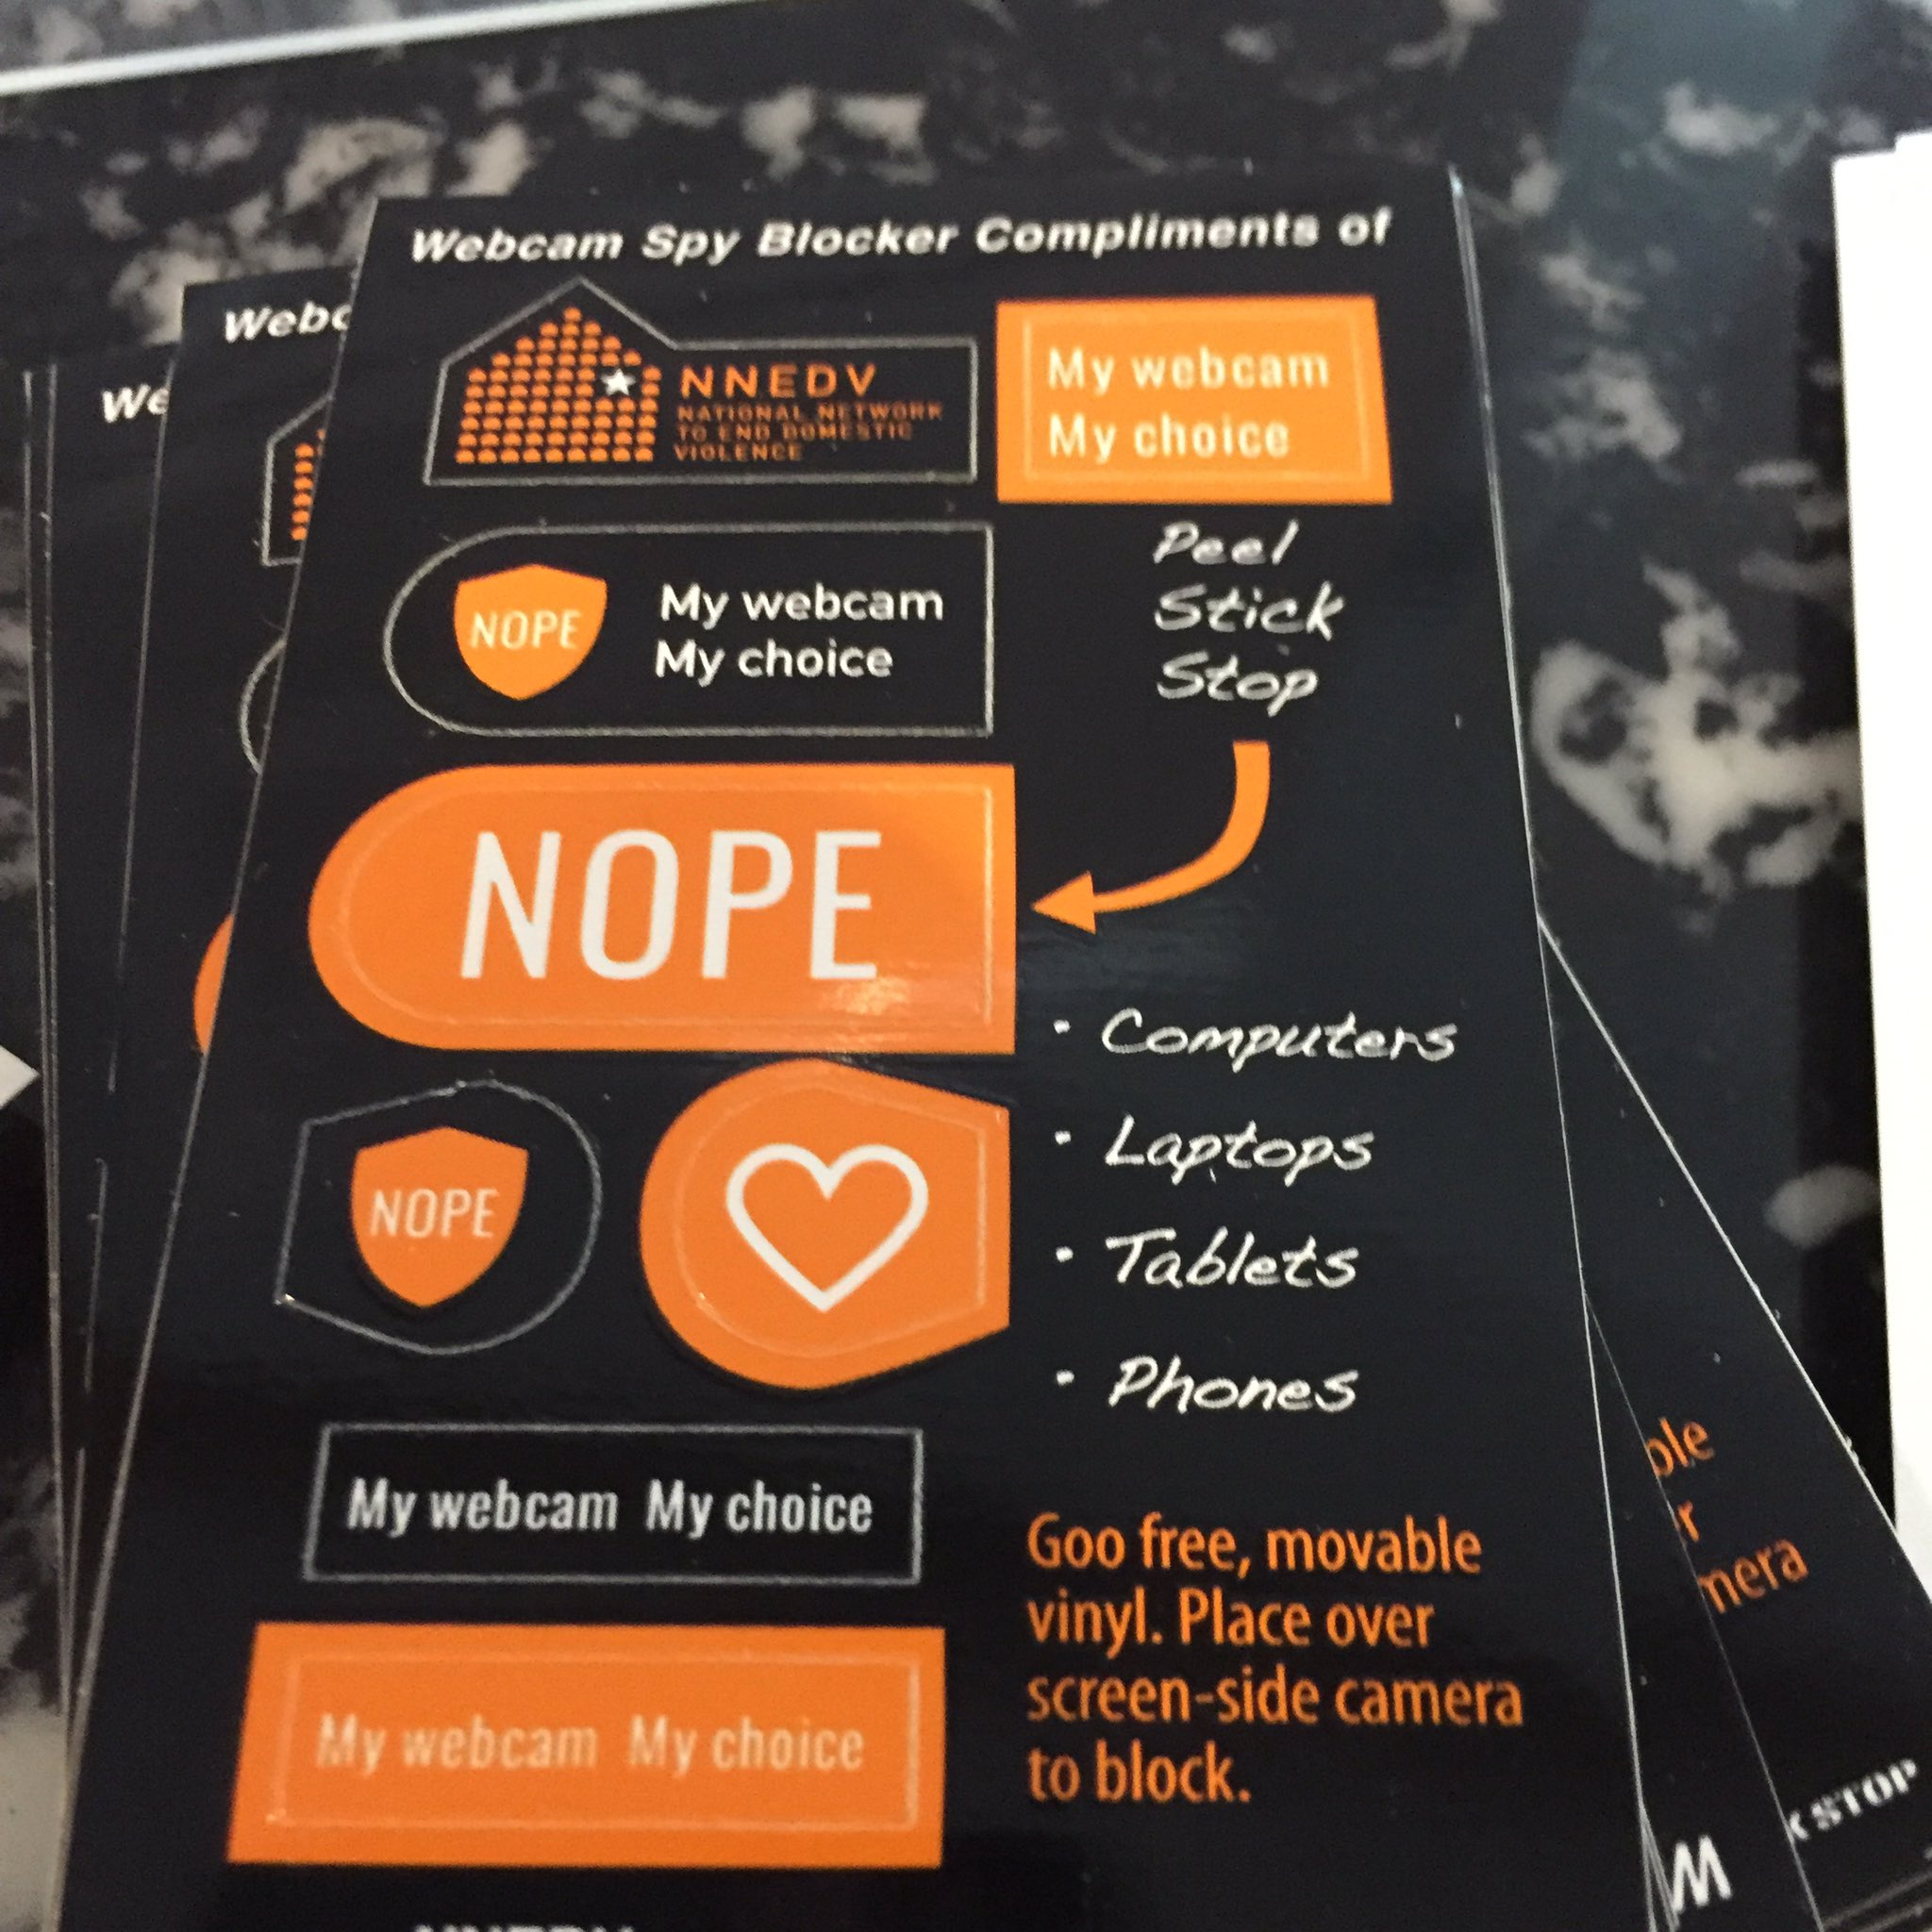 Launching our new webcam covers at #techsummit17 #TechSafetyMeans my webcam my choice #nope https://t.co/MIr7fpVomz